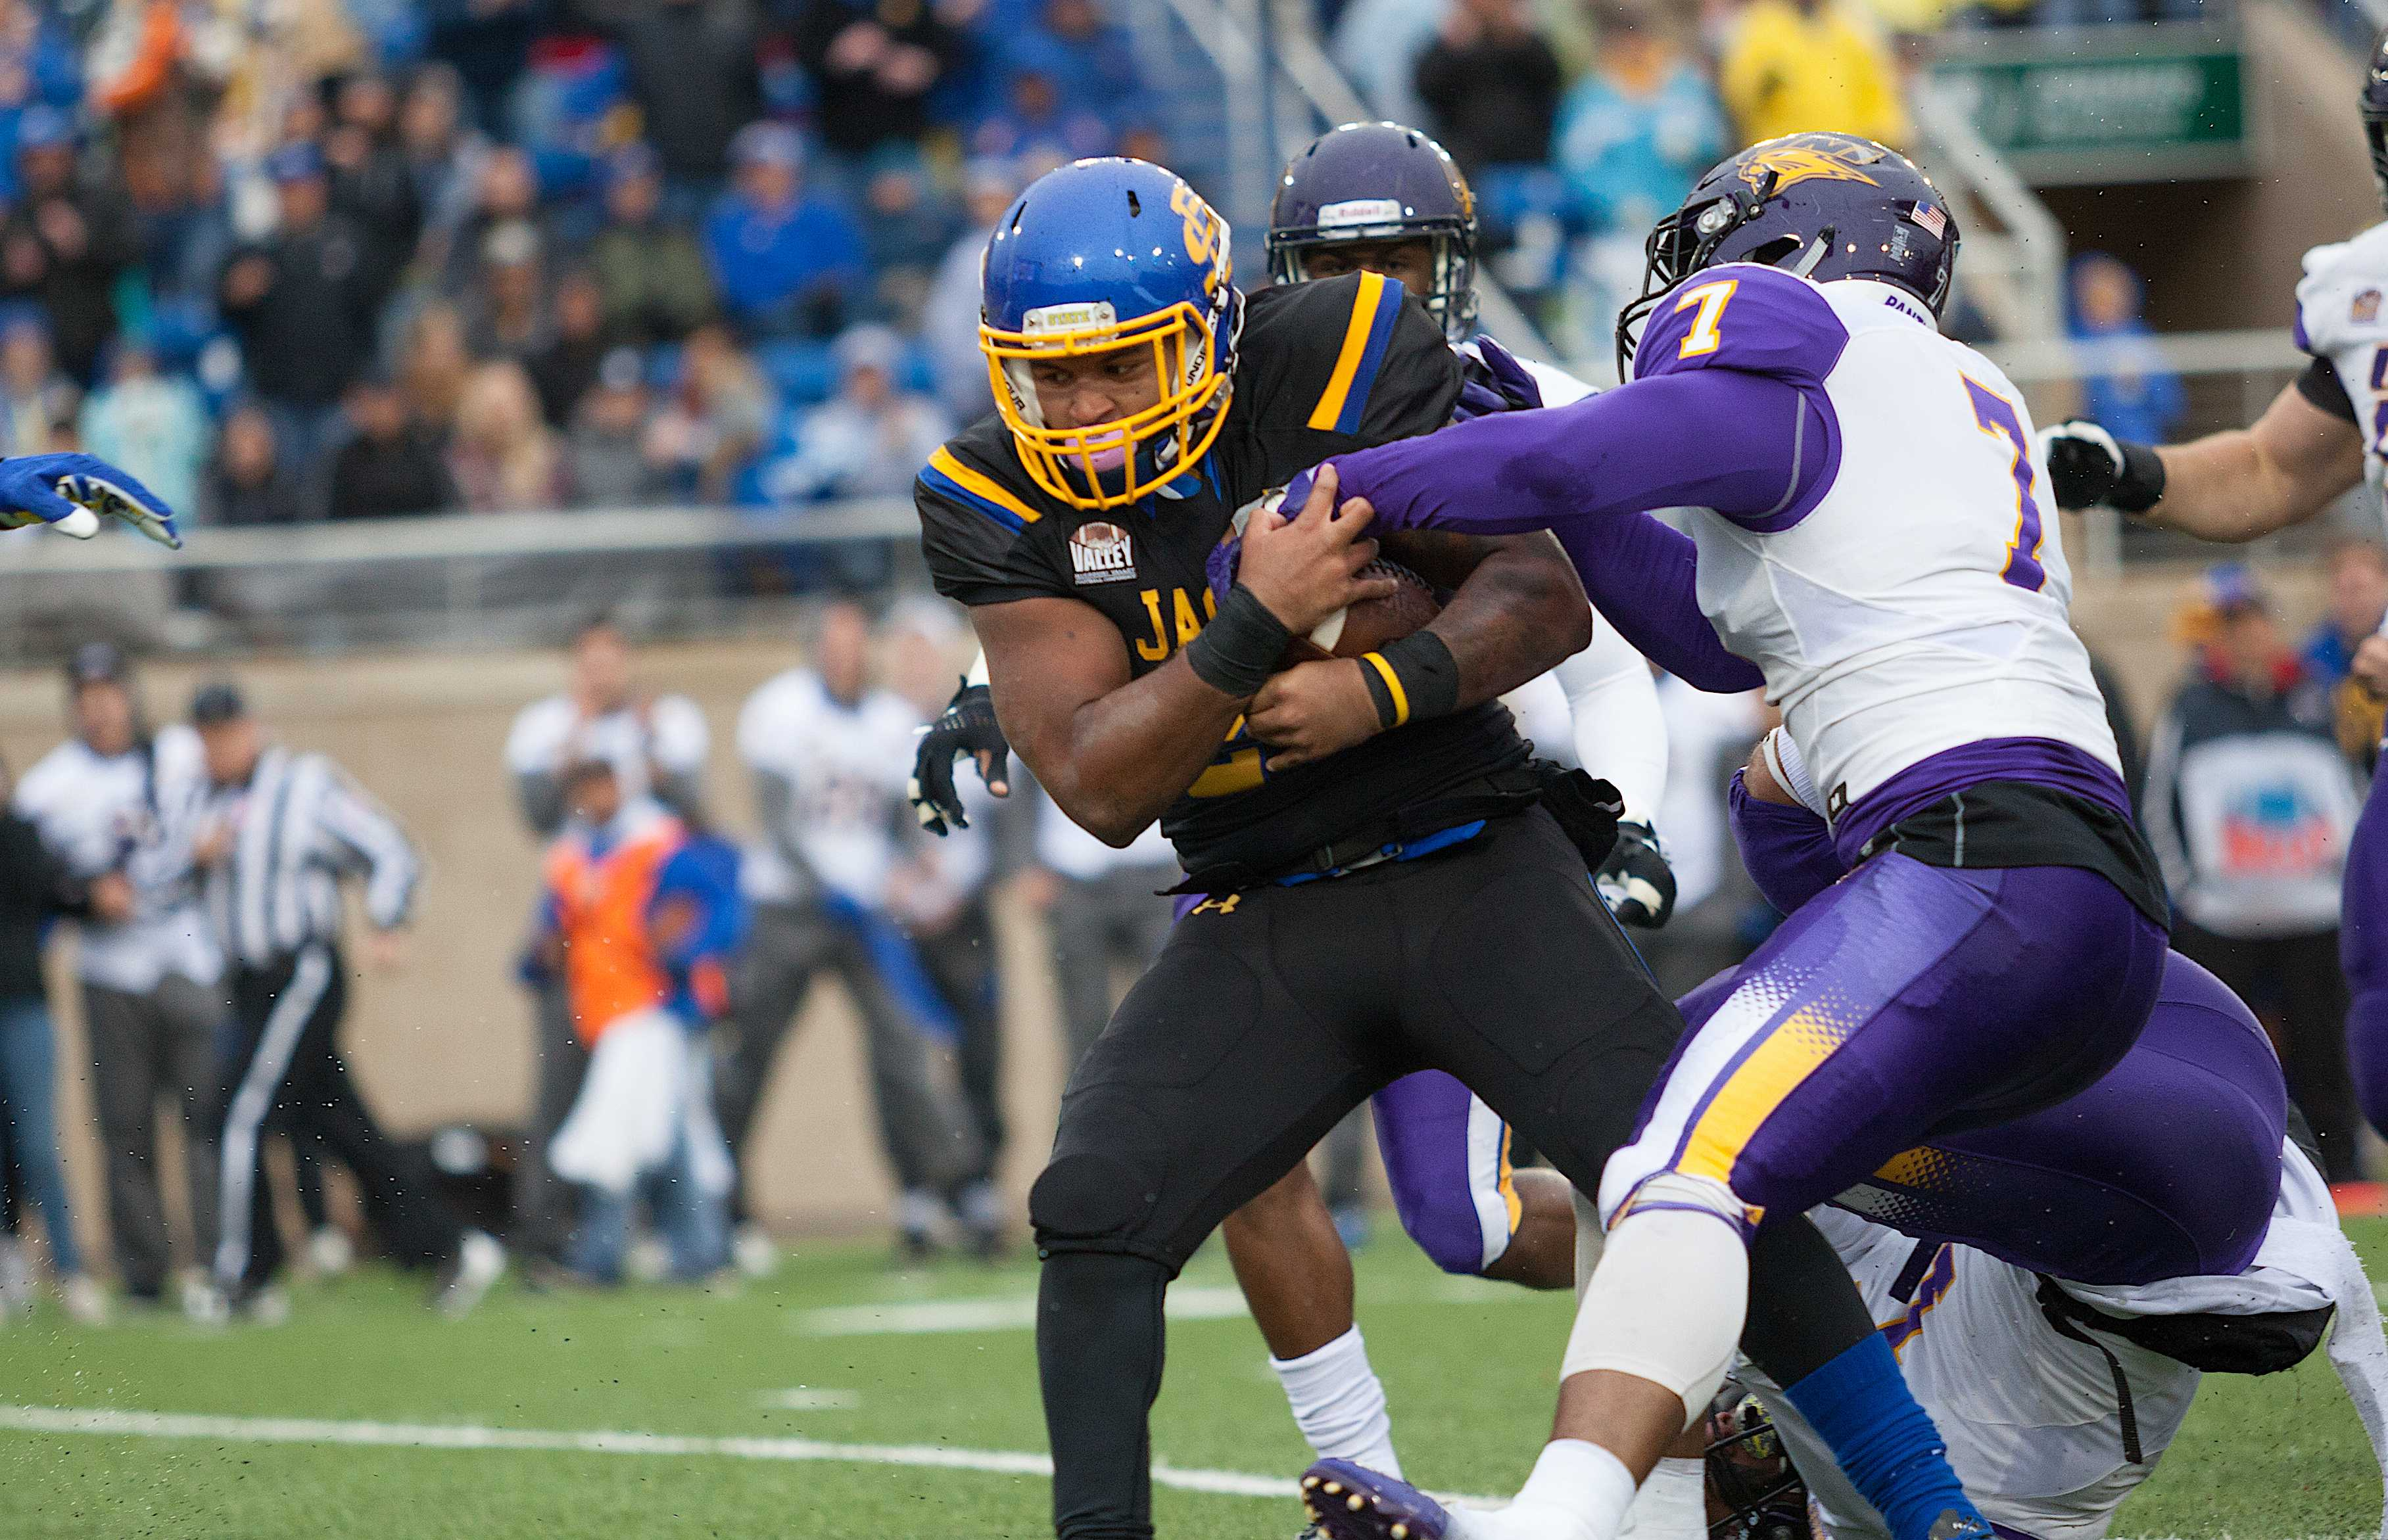 THIEN NGUYEN  Sophomore Mikey Daniel (26) rushes 21 yards for a first down during the game against UNI Oct. 14. The Jacks will face No. 14 Western Illinois Saturday in Macomb, Illinois.